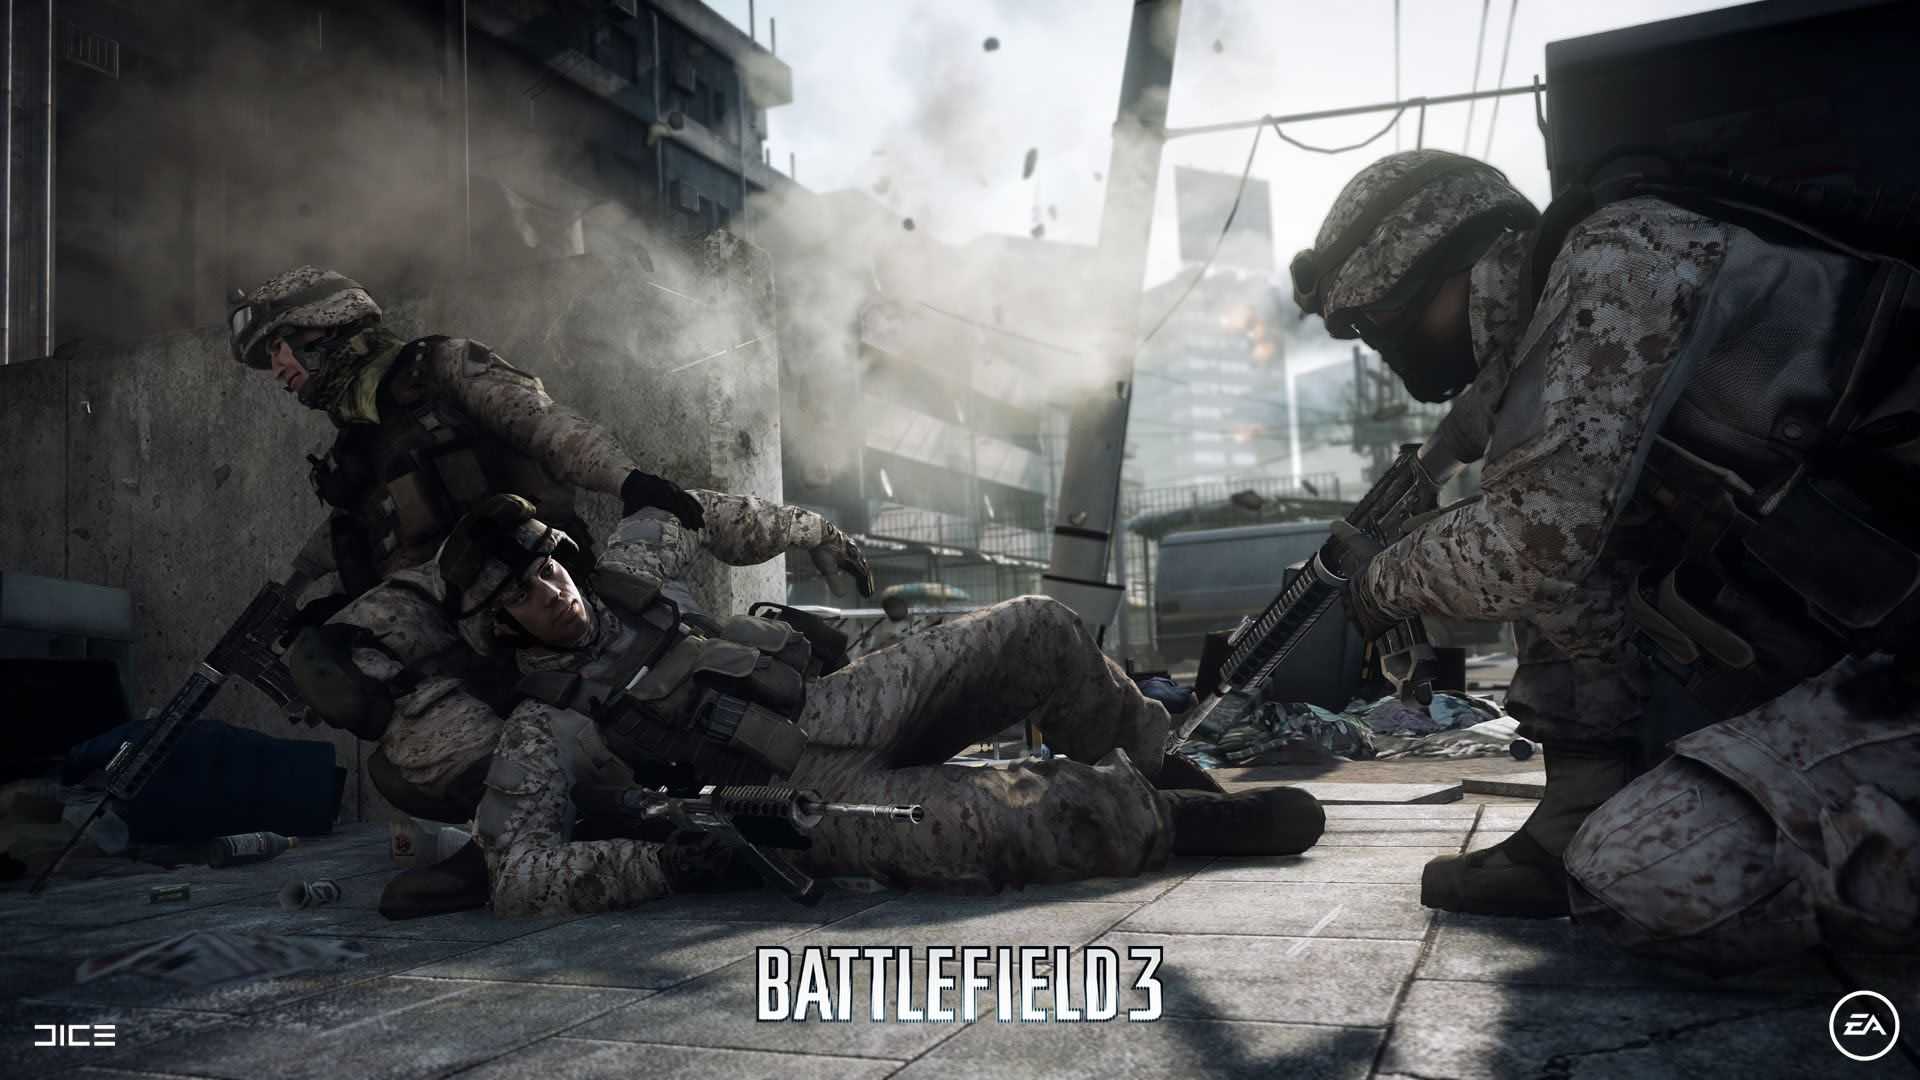 Most Inspiring Wallpaper Gaming Battlefield - eceffbcc1e6c4a7f6b227aab32bf7ad6  Picture_244178 .jpg